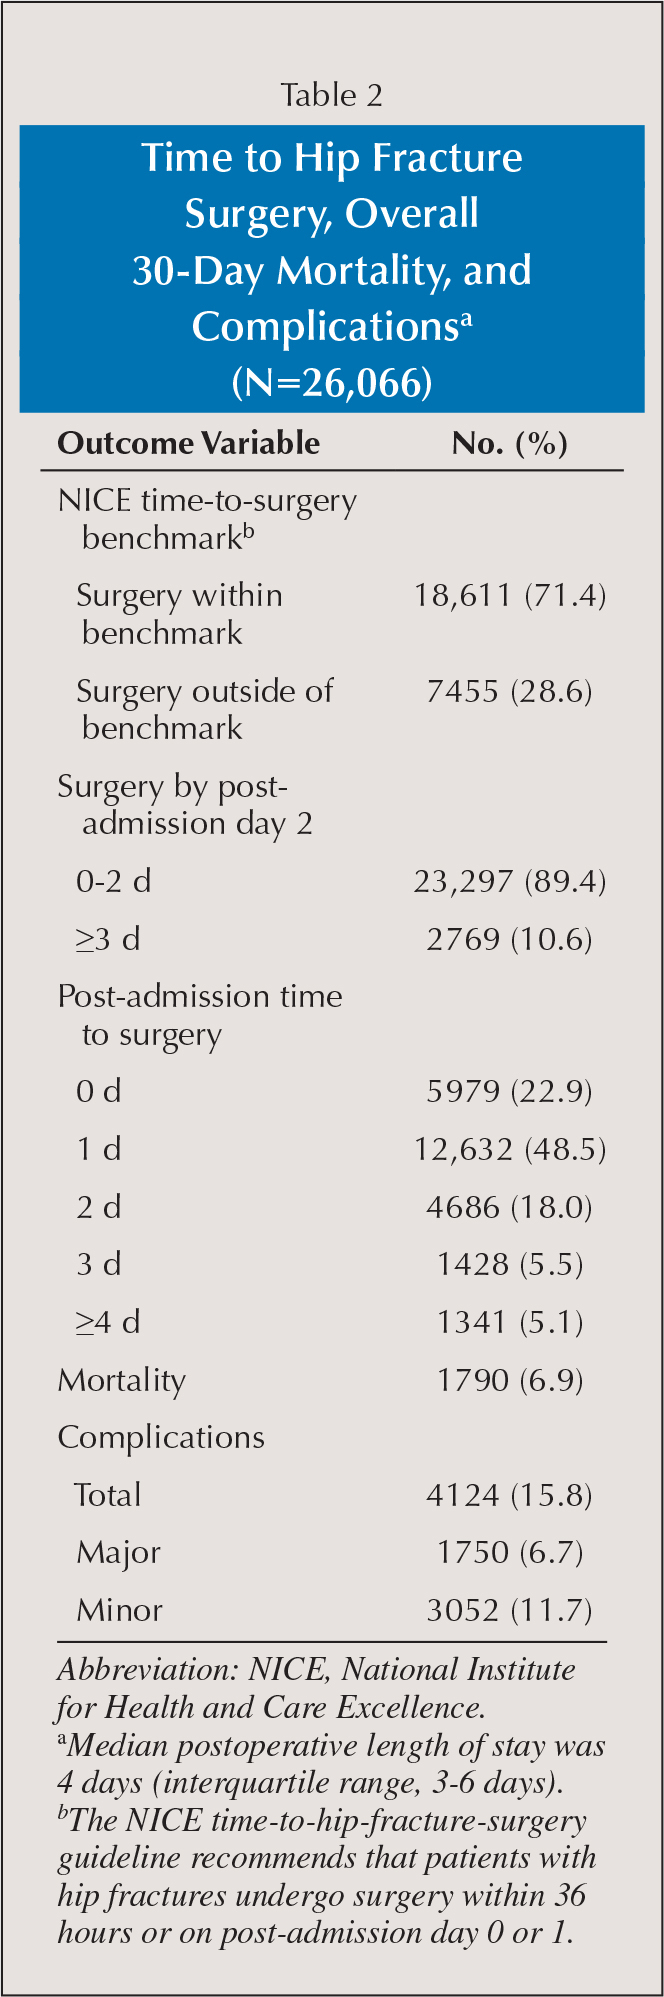 Time to Hip Fracture Surgery, Overall 30-Day Mortality, and Complicationsa (N=26,066)